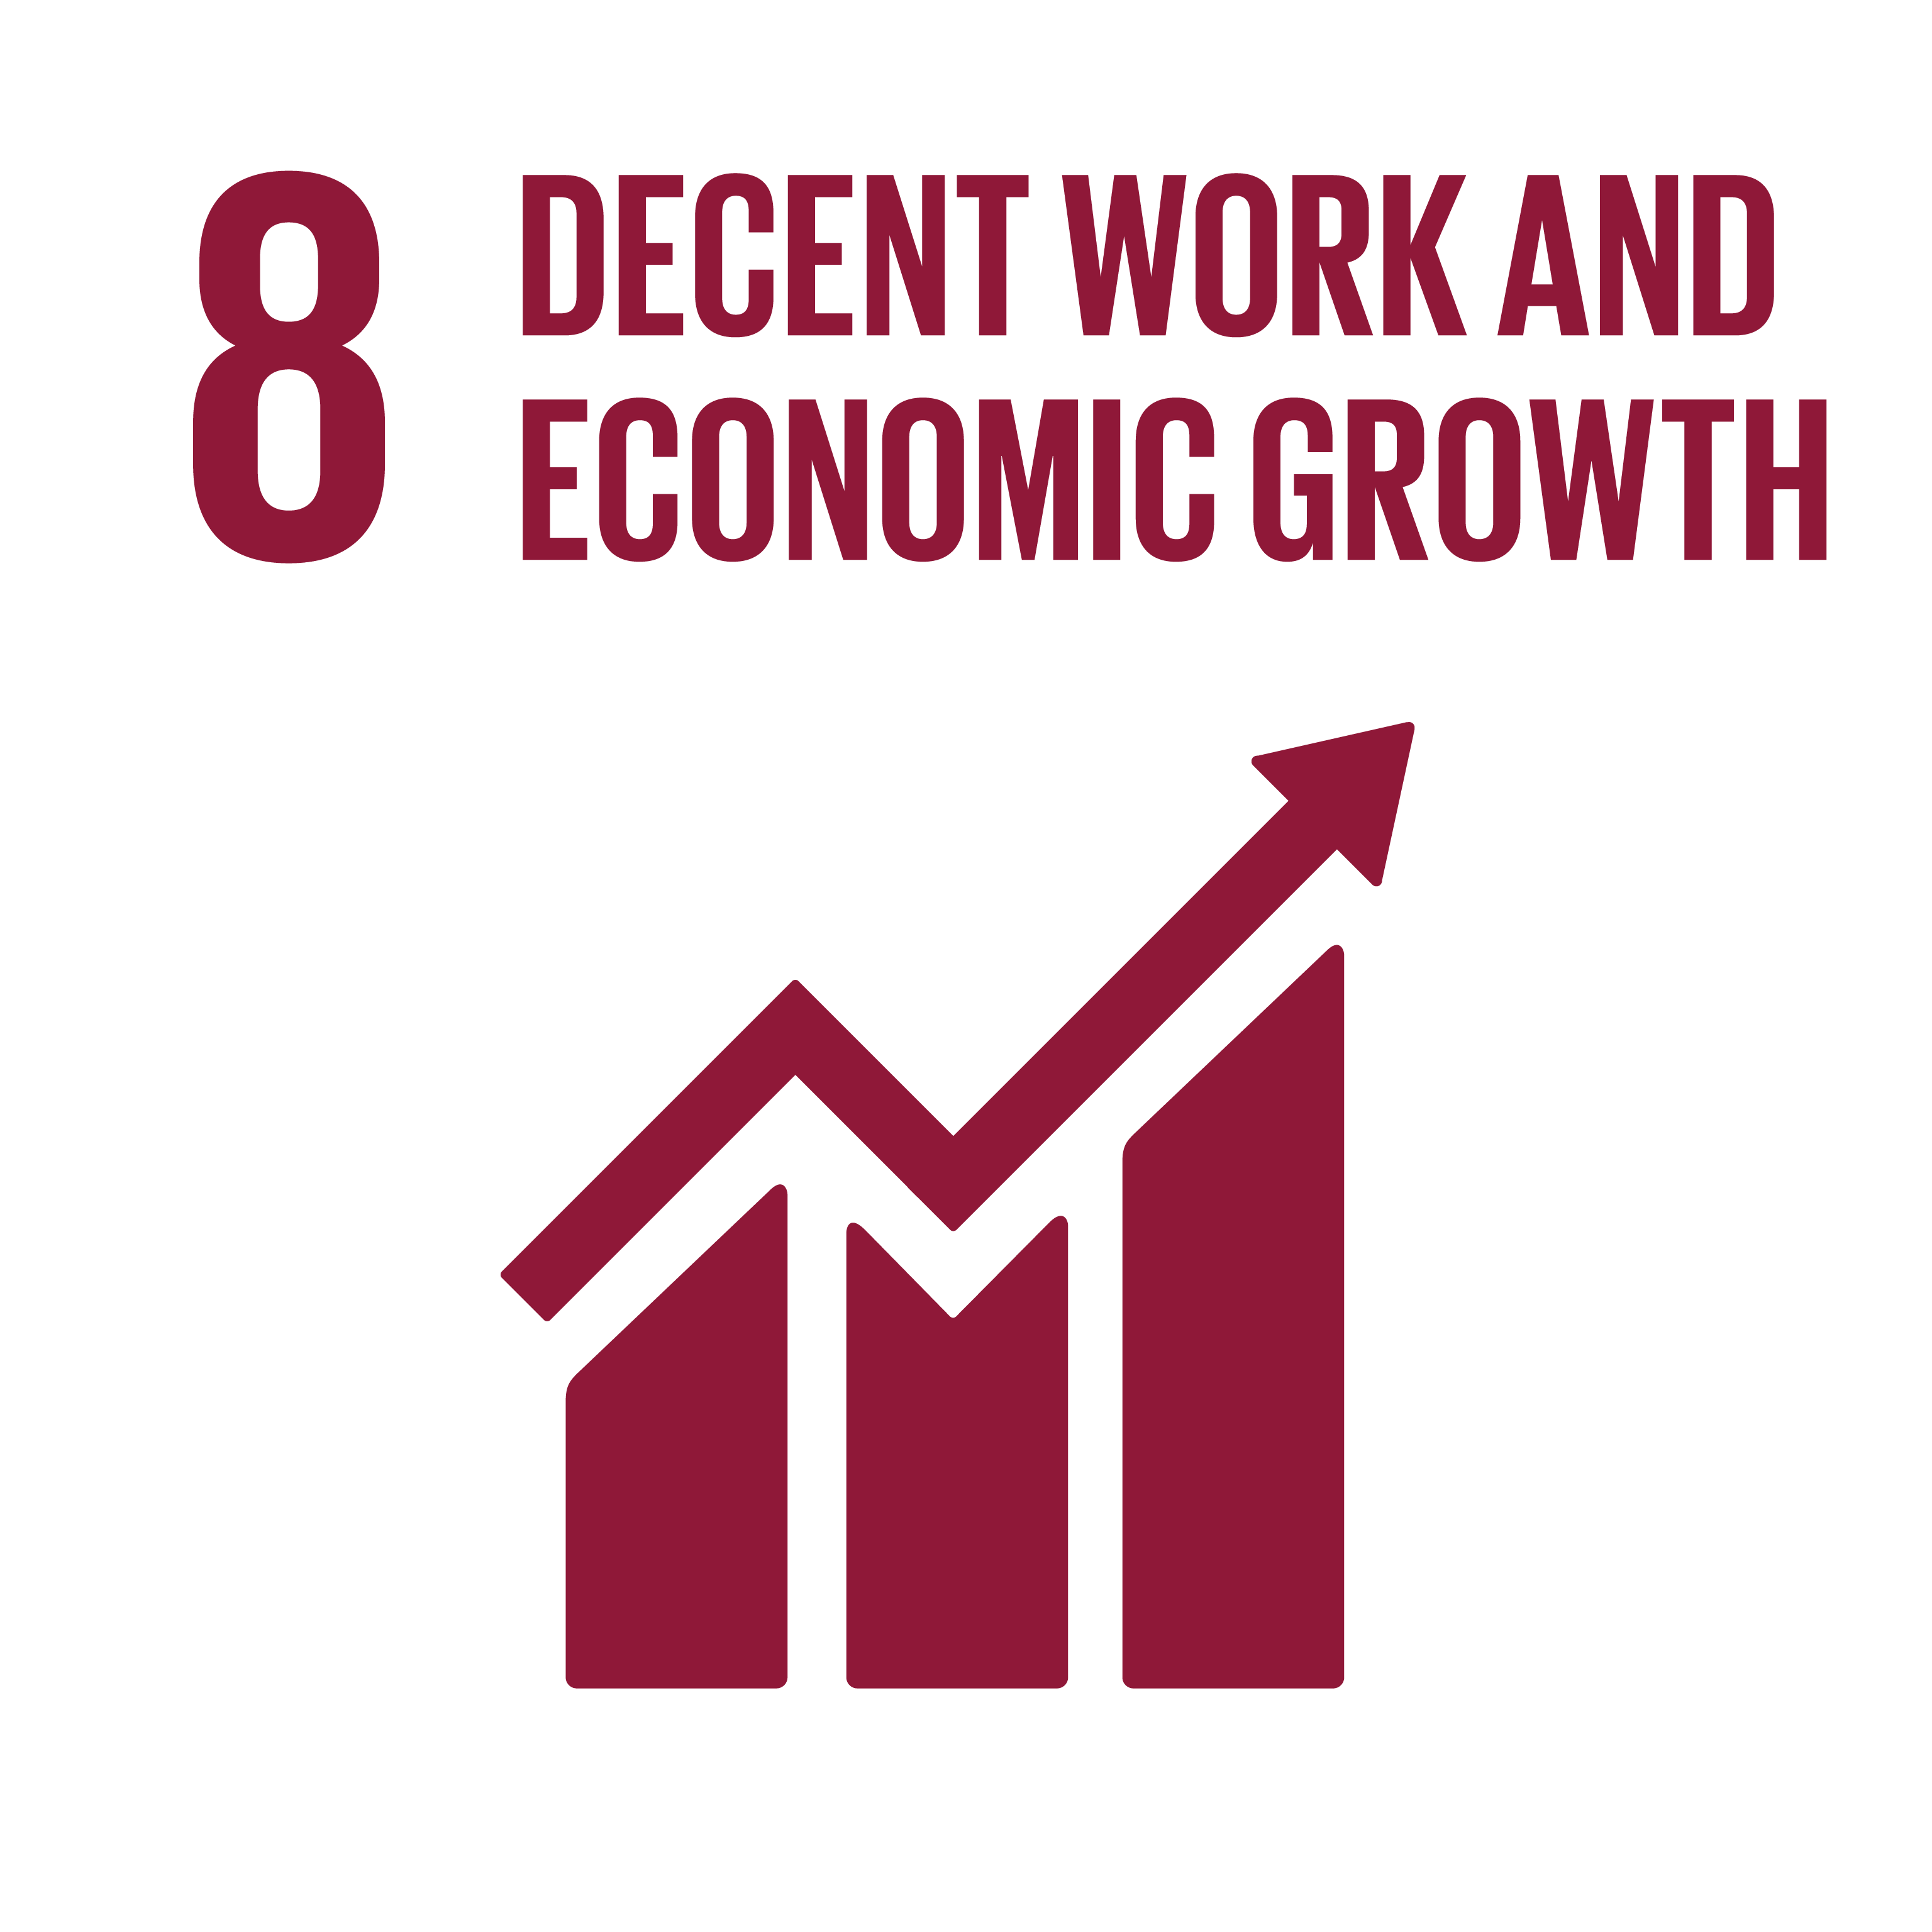 SDG08: Decent Work and Economic Growth